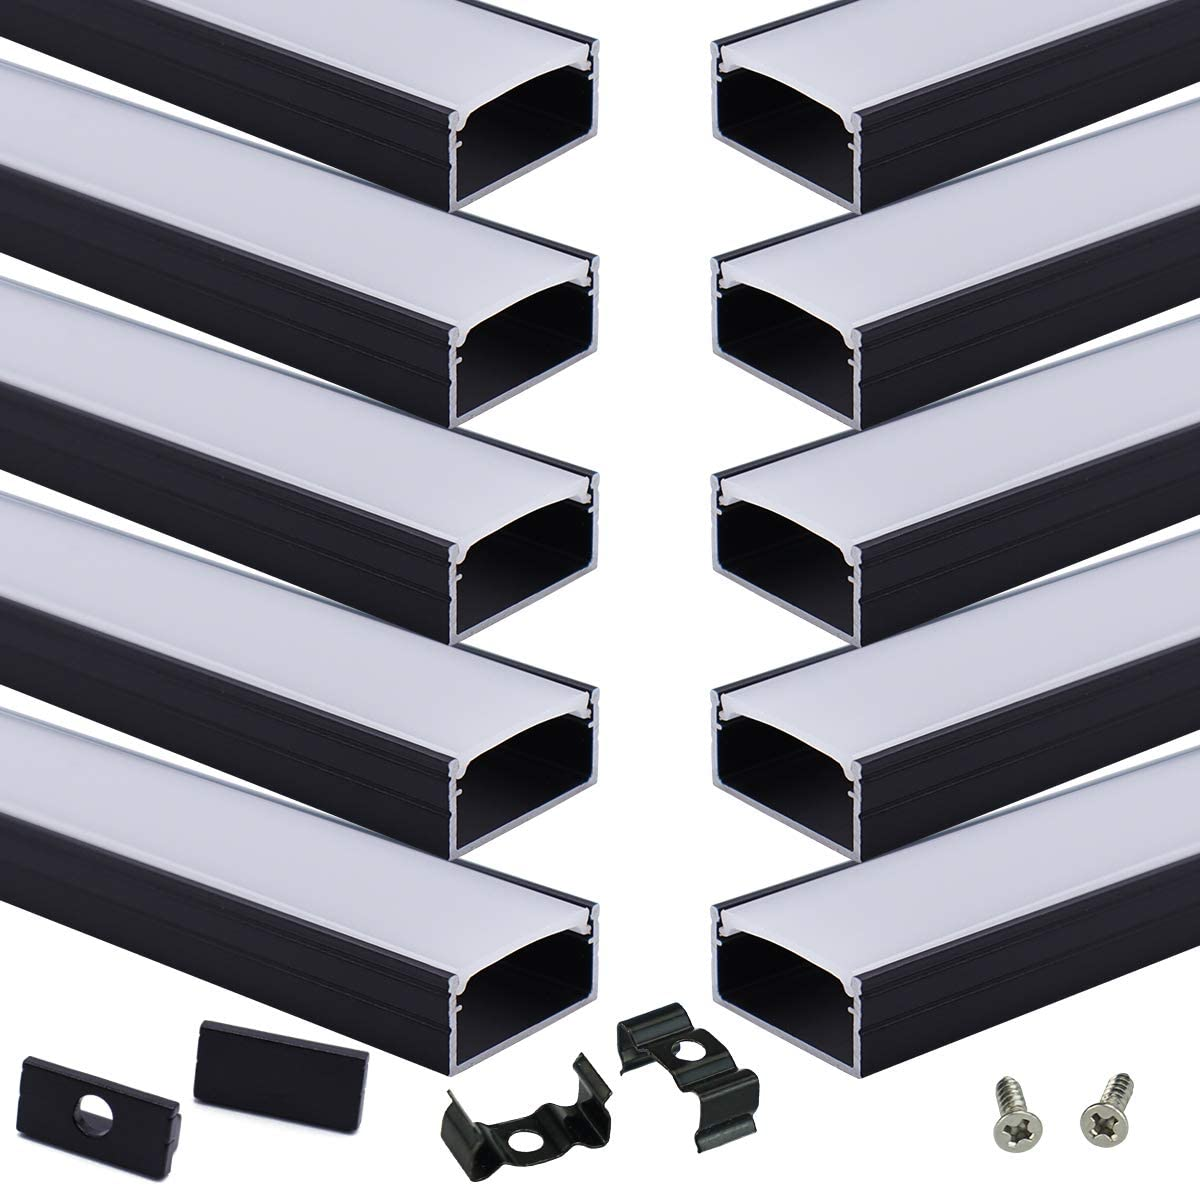 Muzata 10Pack 3.3FT 1M Black 1 year warranty LED White with Milky Channel System Mesa Mall